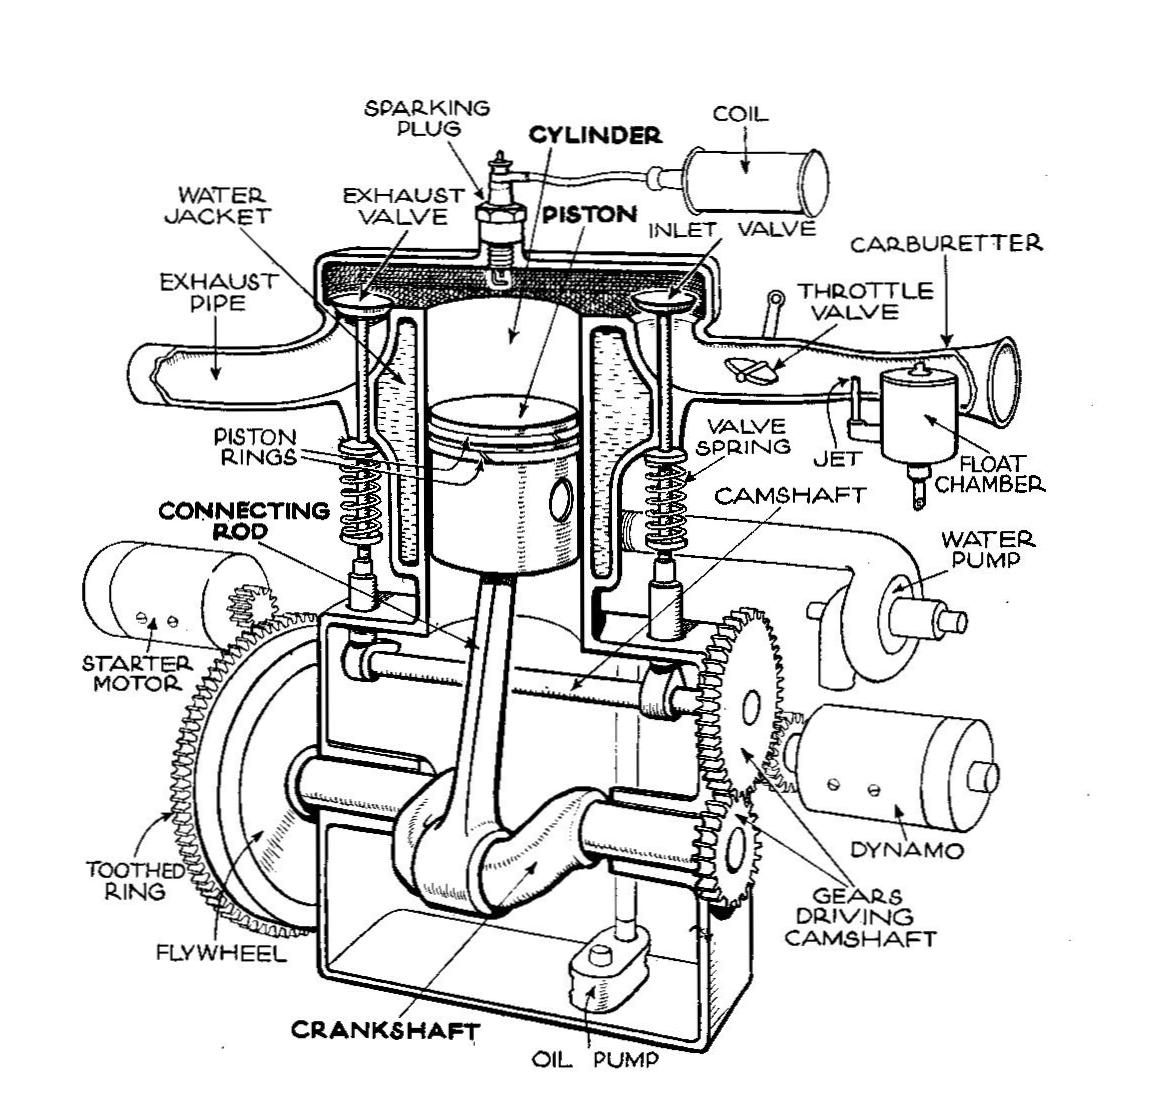 File:Single Cylinder_T Head_engine_(Autocar_Handbook,_13th_ed,_1935) on 2009 Toyota Corolla Body Parts Diagram